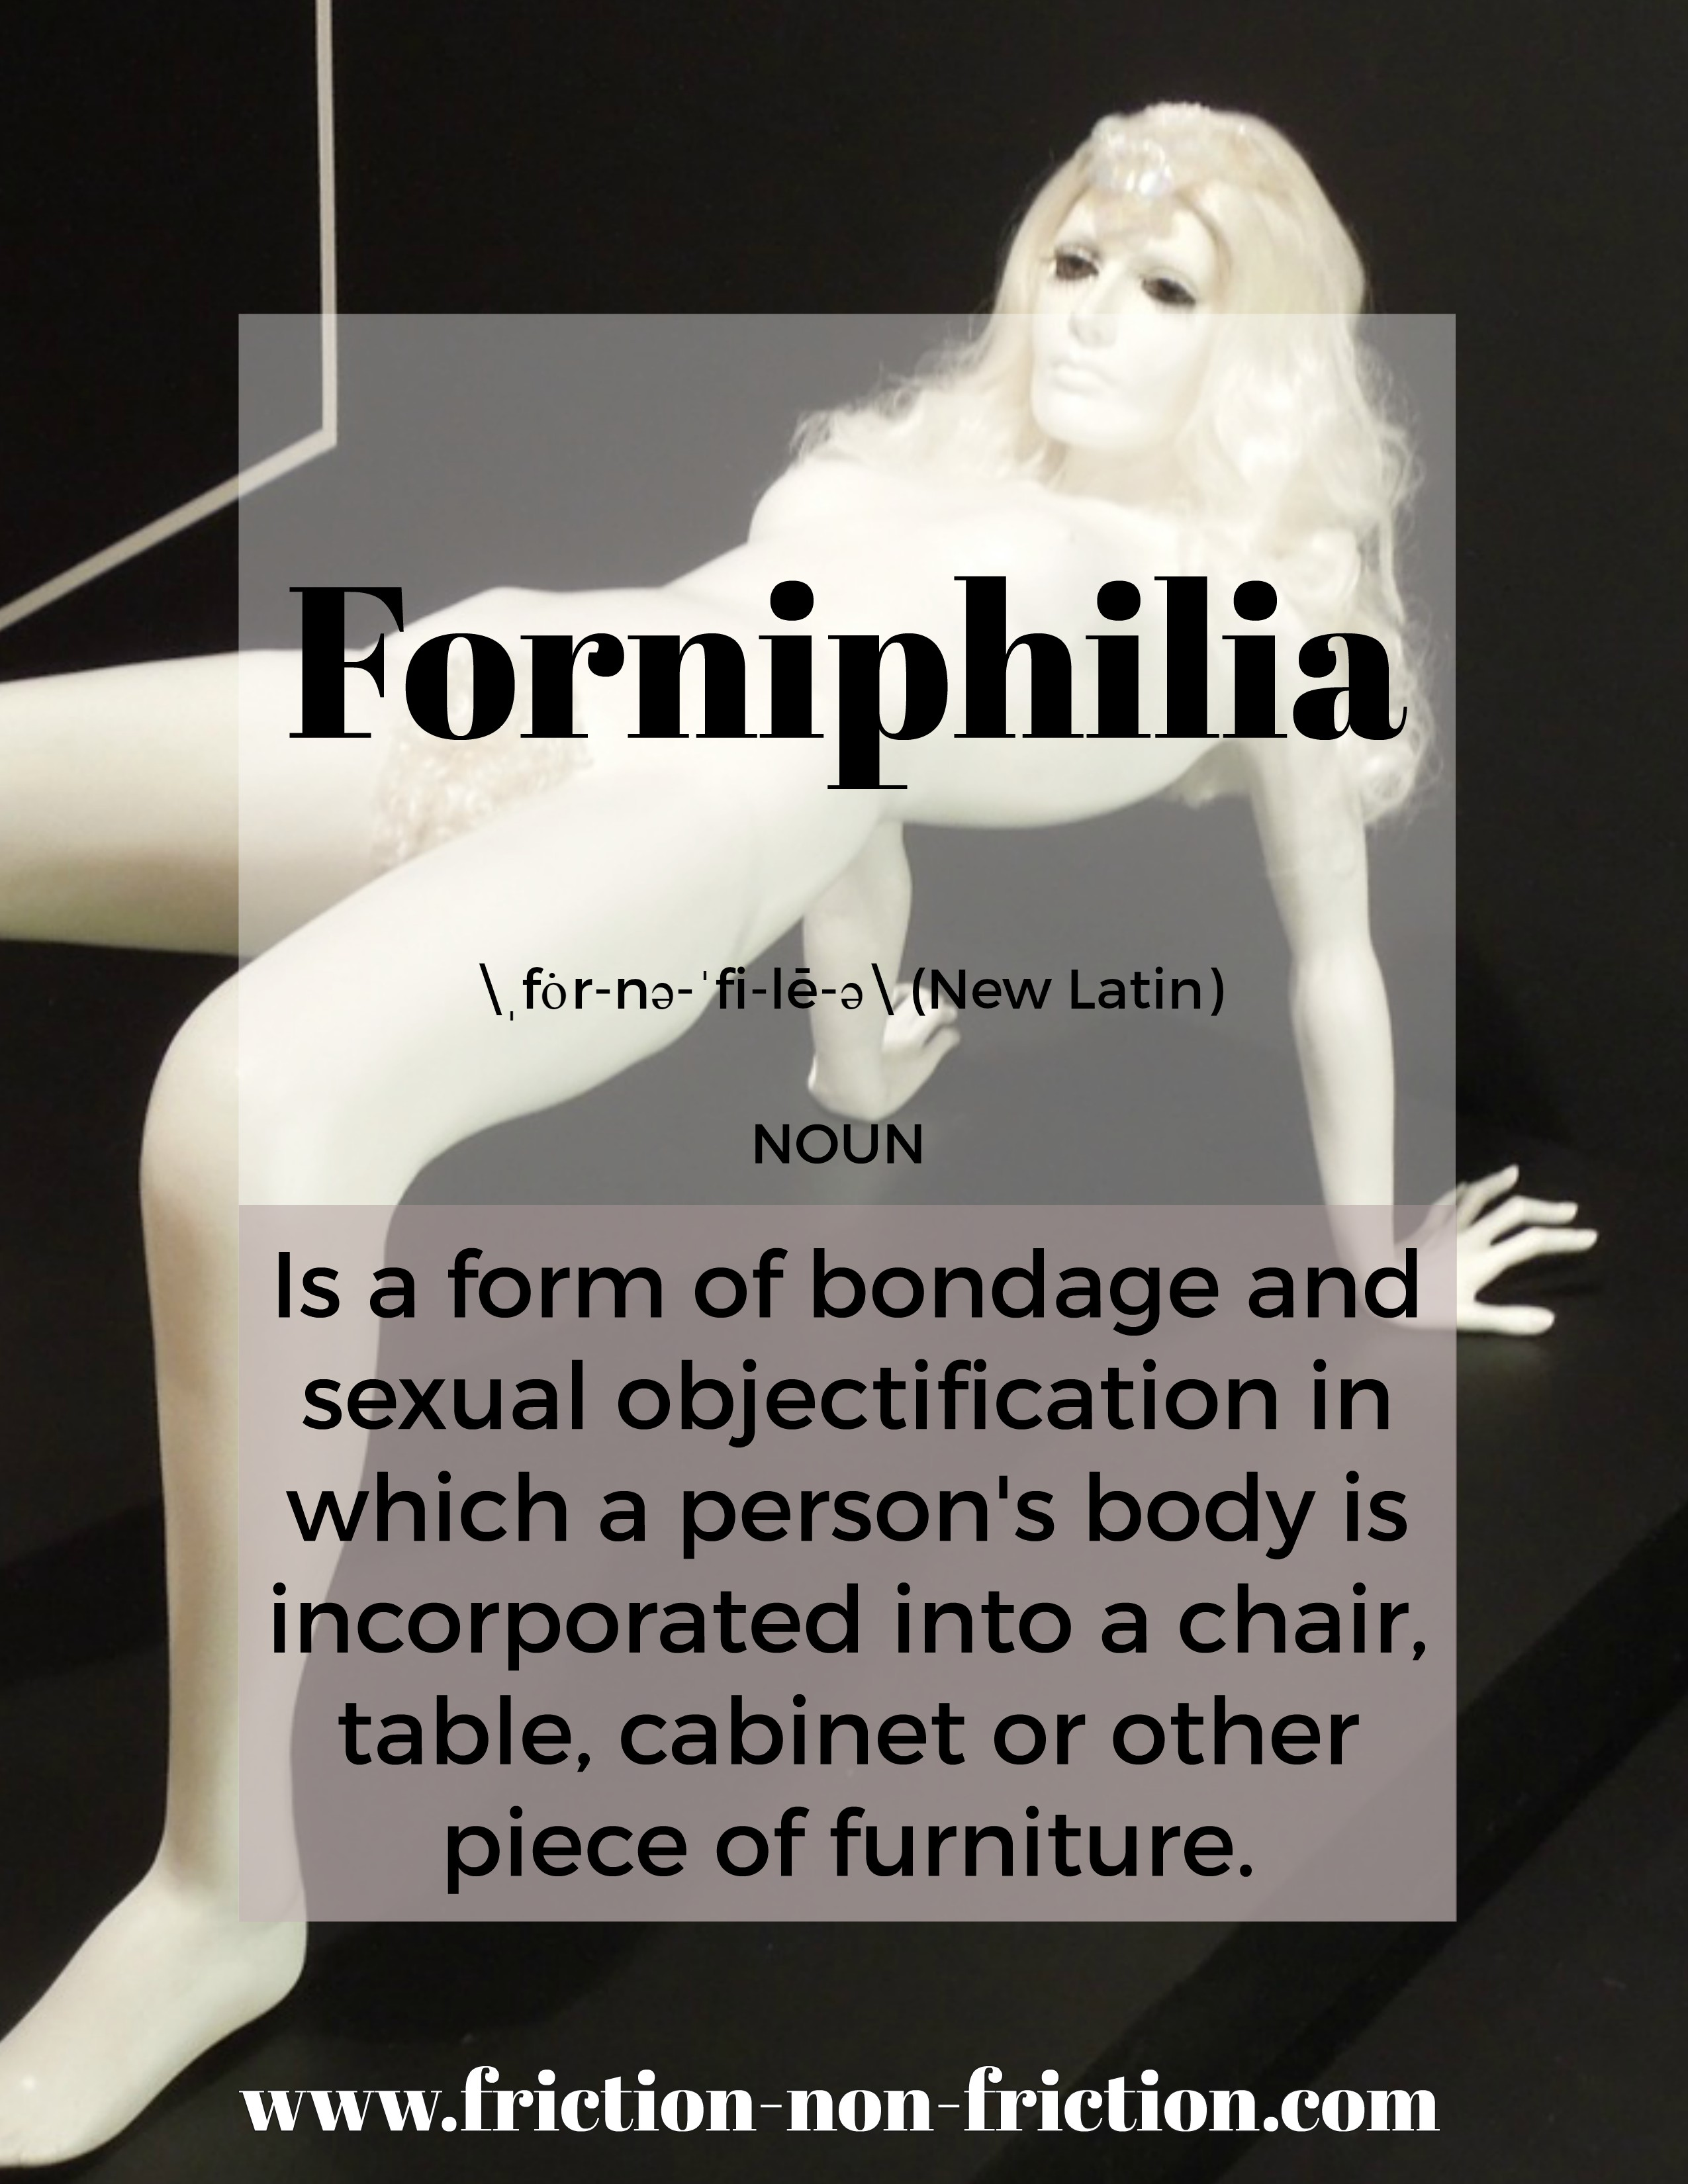 Forniphilia -- another great FRICTIONARY definition from Friction|non|Friction